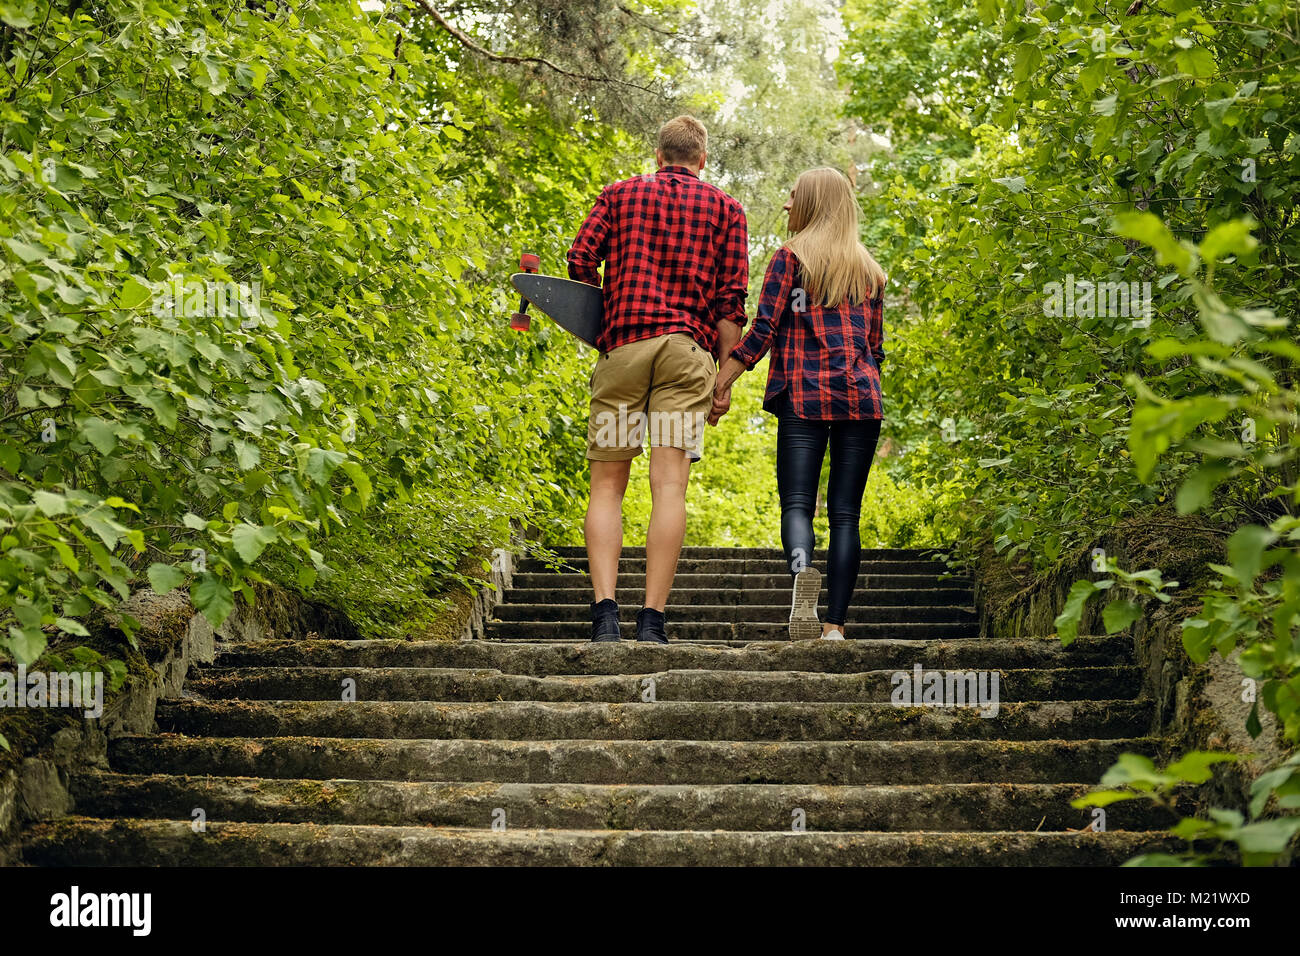 Skateboarders couple to go upstairs in nature parks. Stock Photo